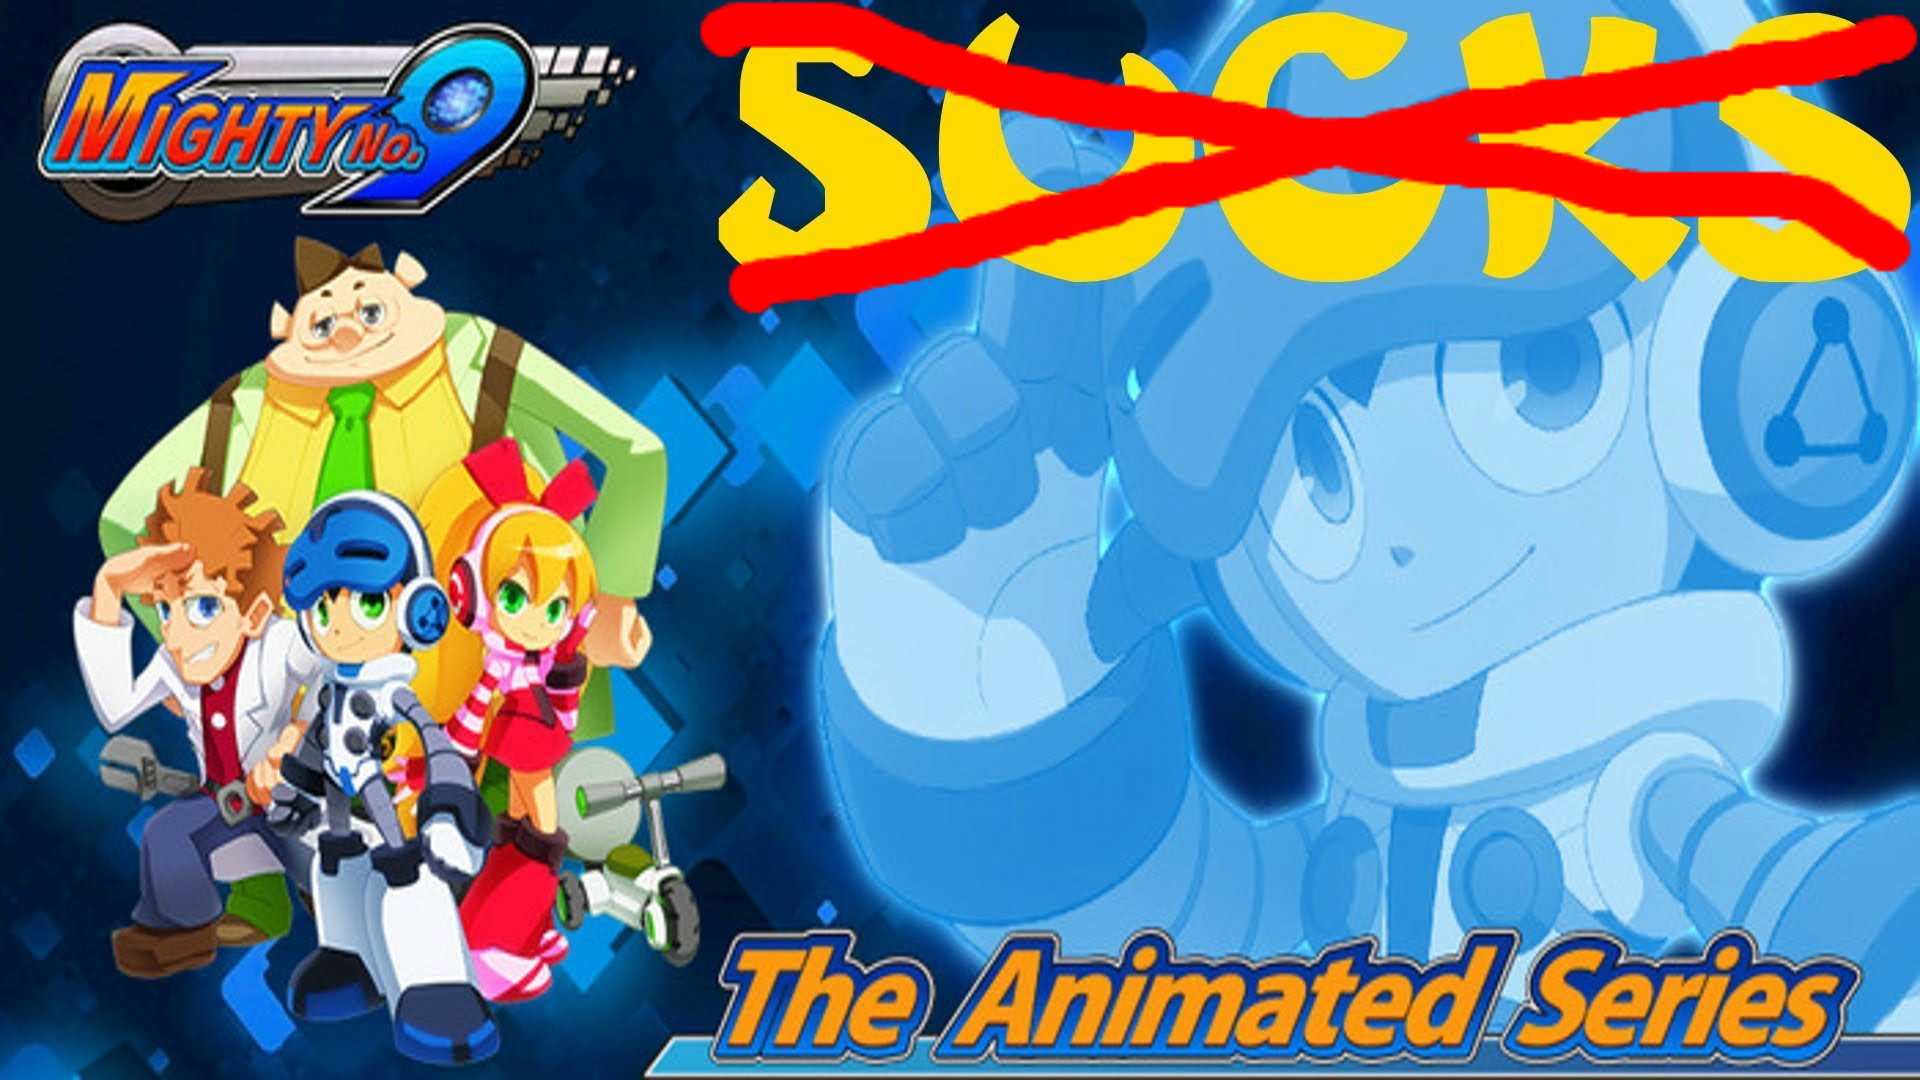 Mighty No. 9 The Animated series